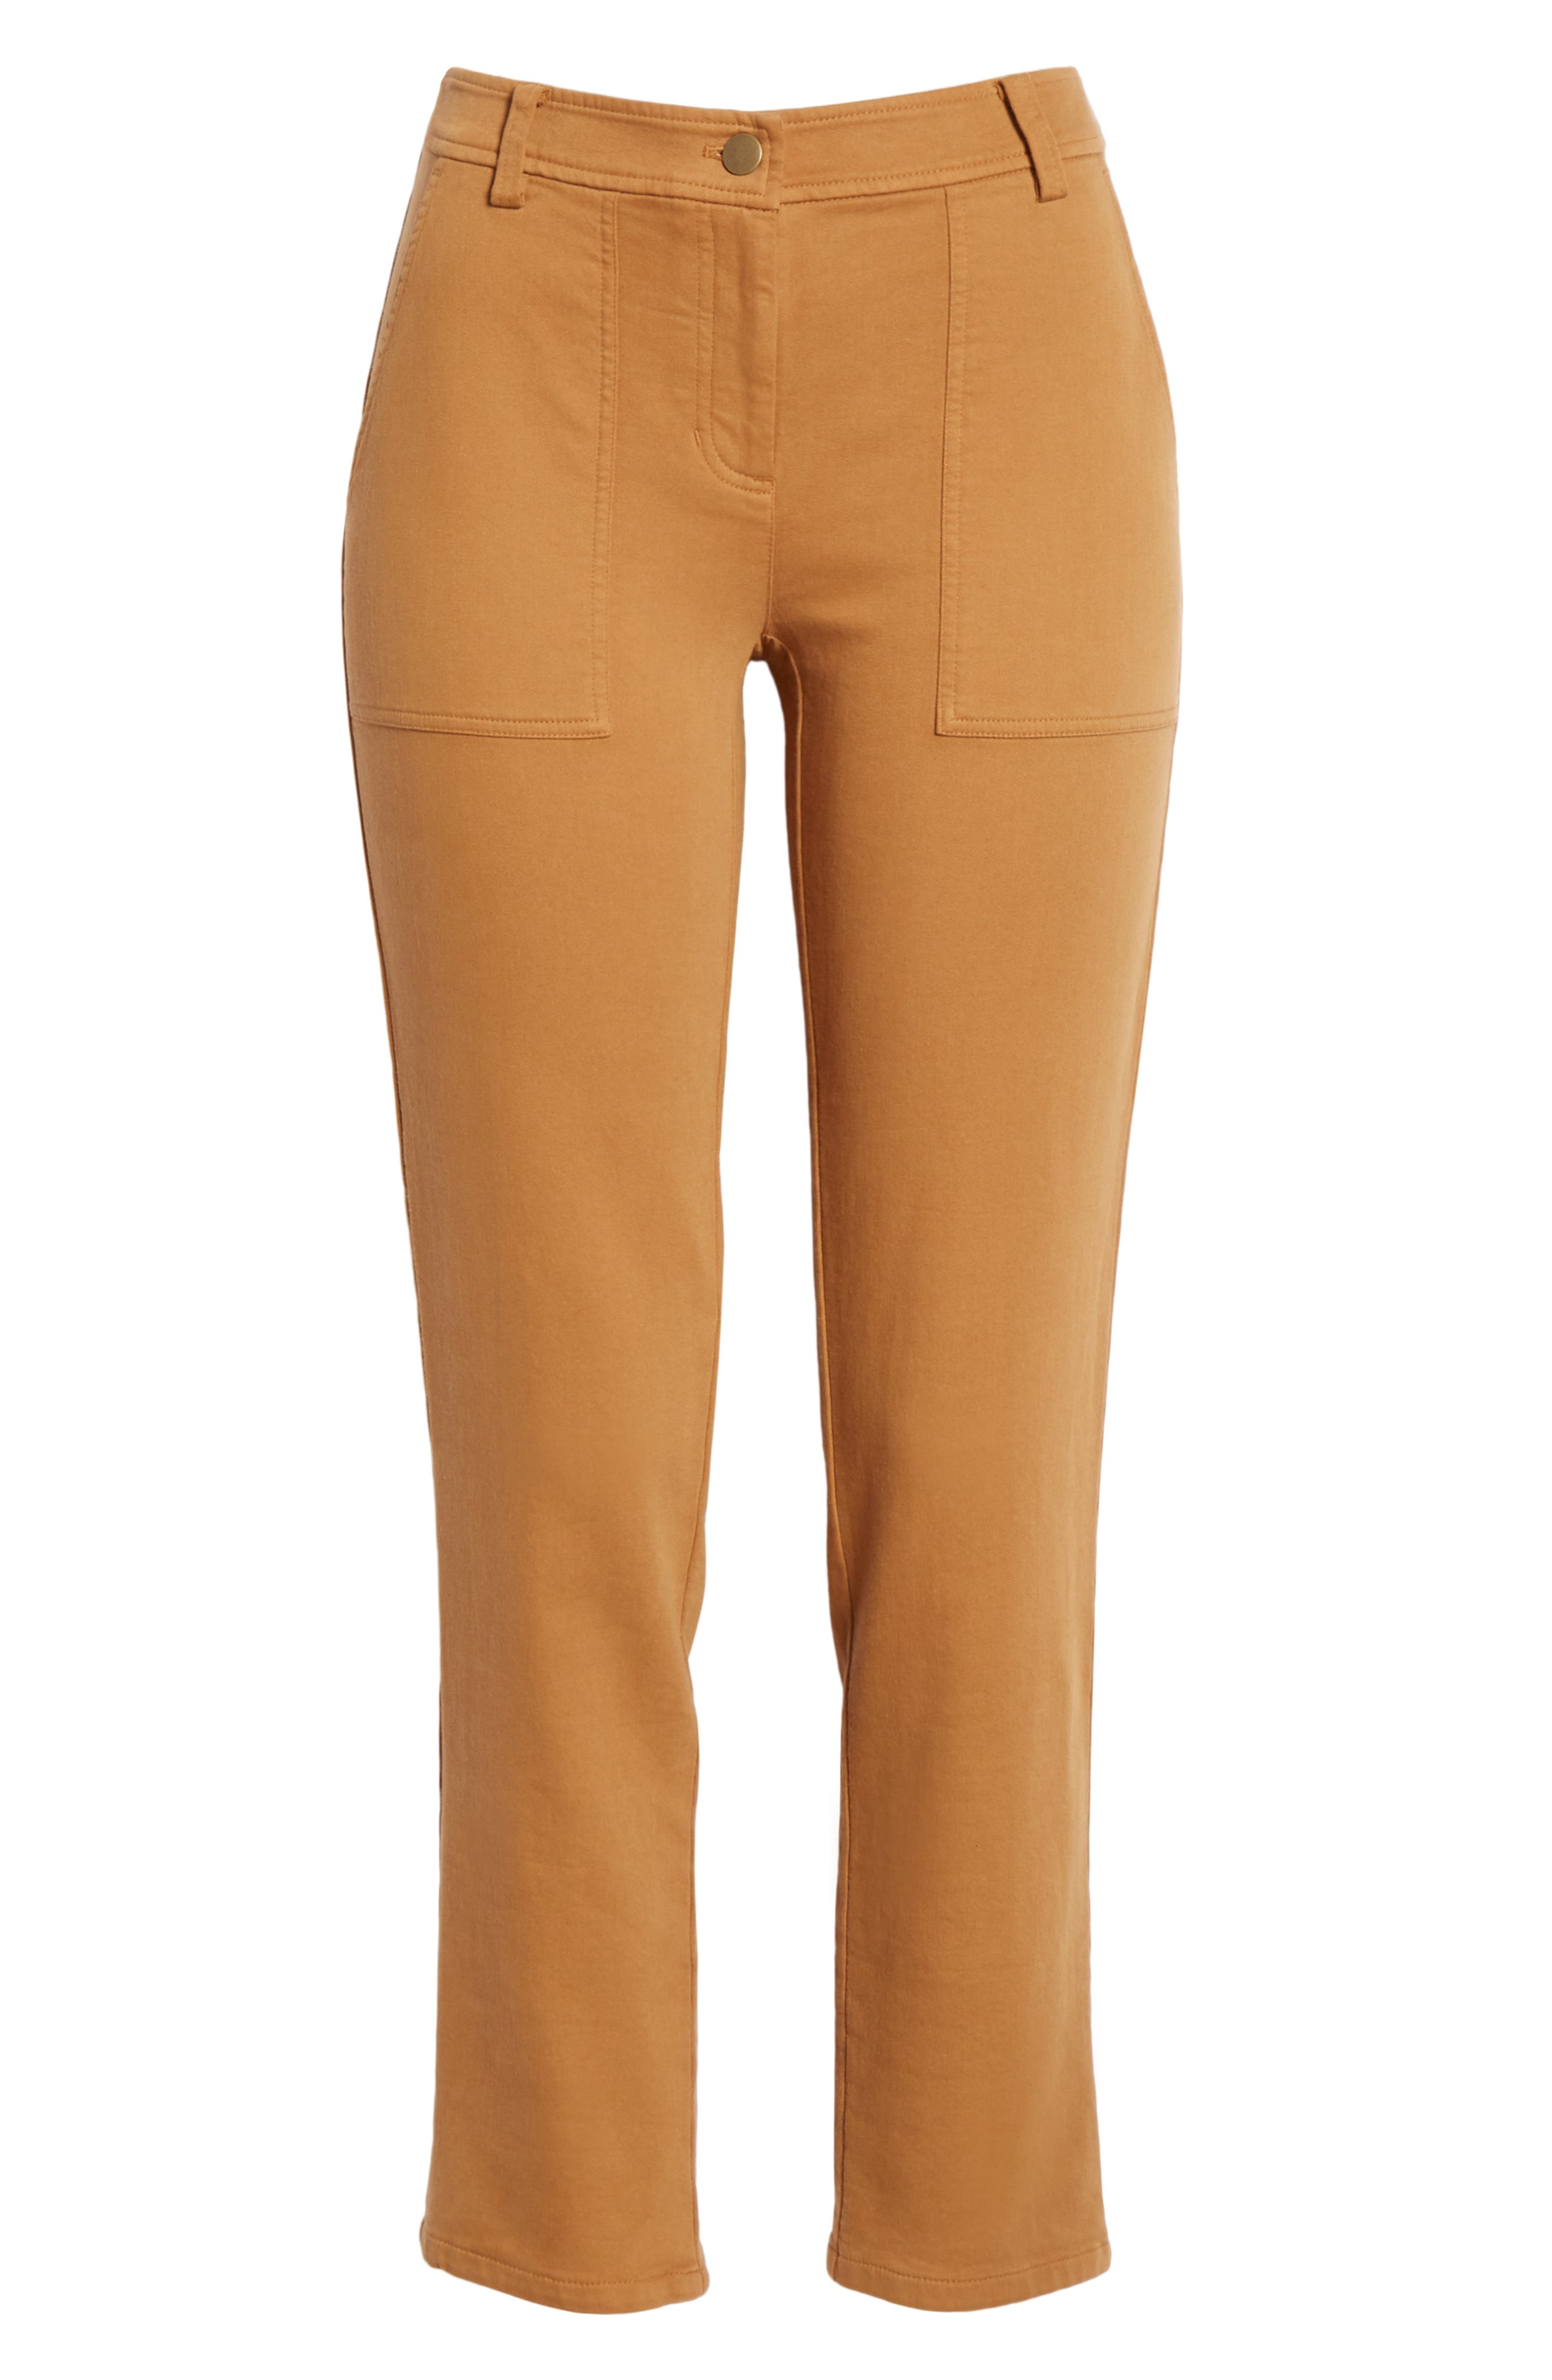 EILEEN FISHER,                             Slim Stretch Cotton Pants,                             Alternate thumbnail 7, color,                             DARK CLAY